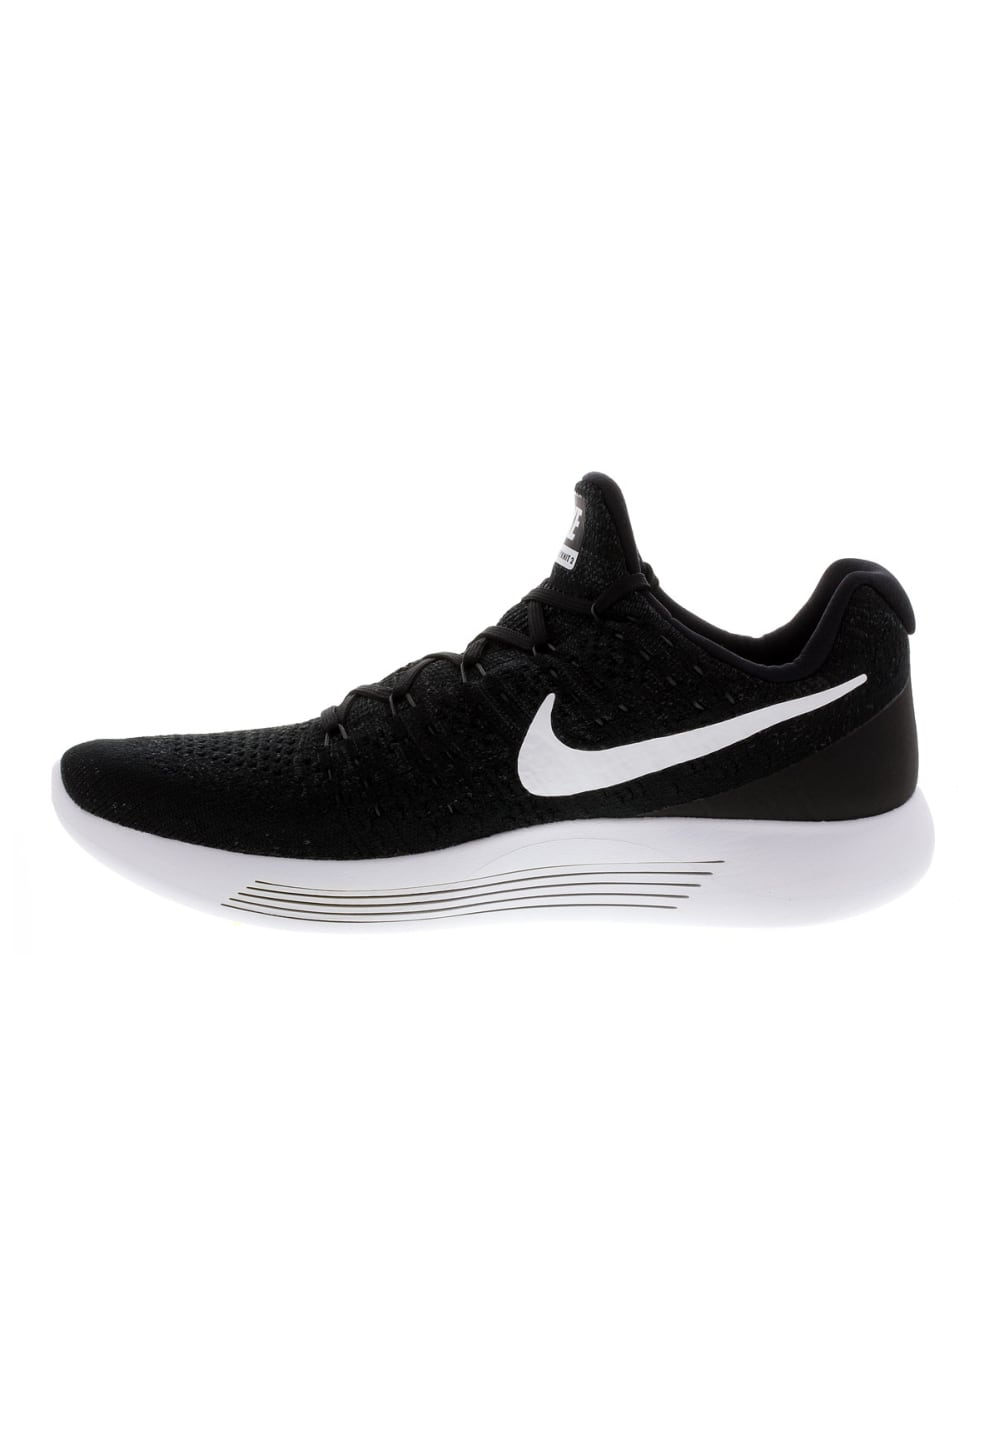 sale retailer 9dcd7 a6cfc Nike Lunarepic Low Flyknit 2 - Running shoes for Men - Black